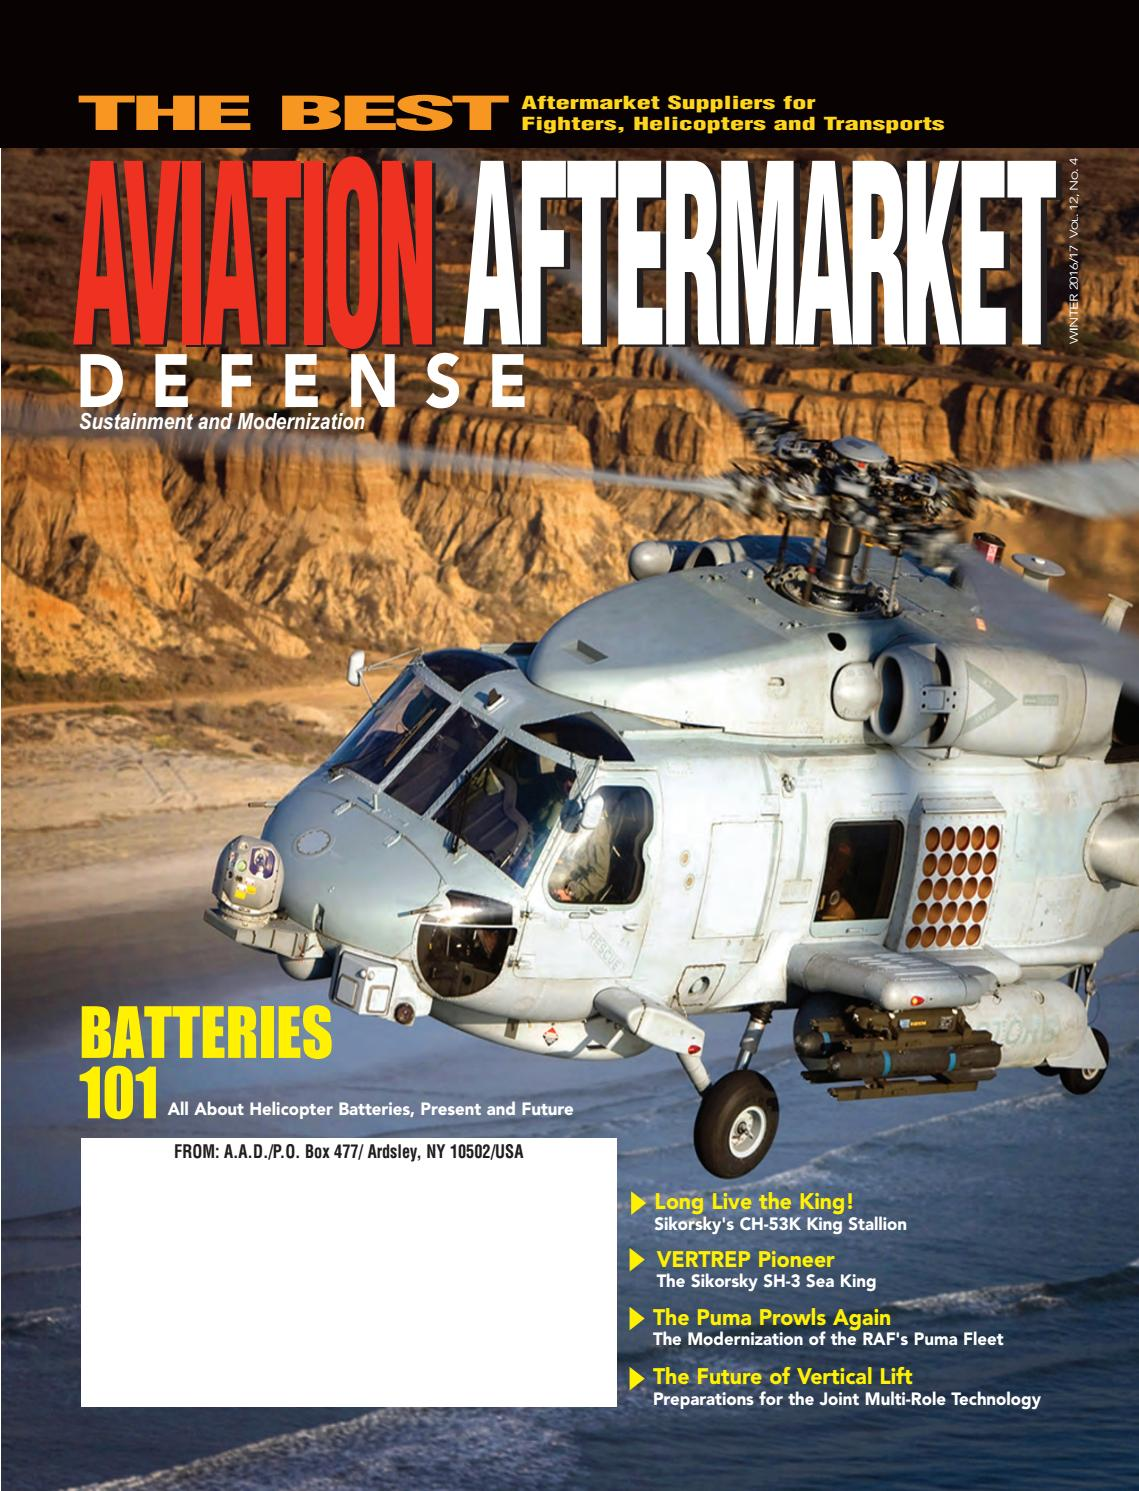 Aviation Aftermarket Defense - AAD (Winter 2016) by ABD